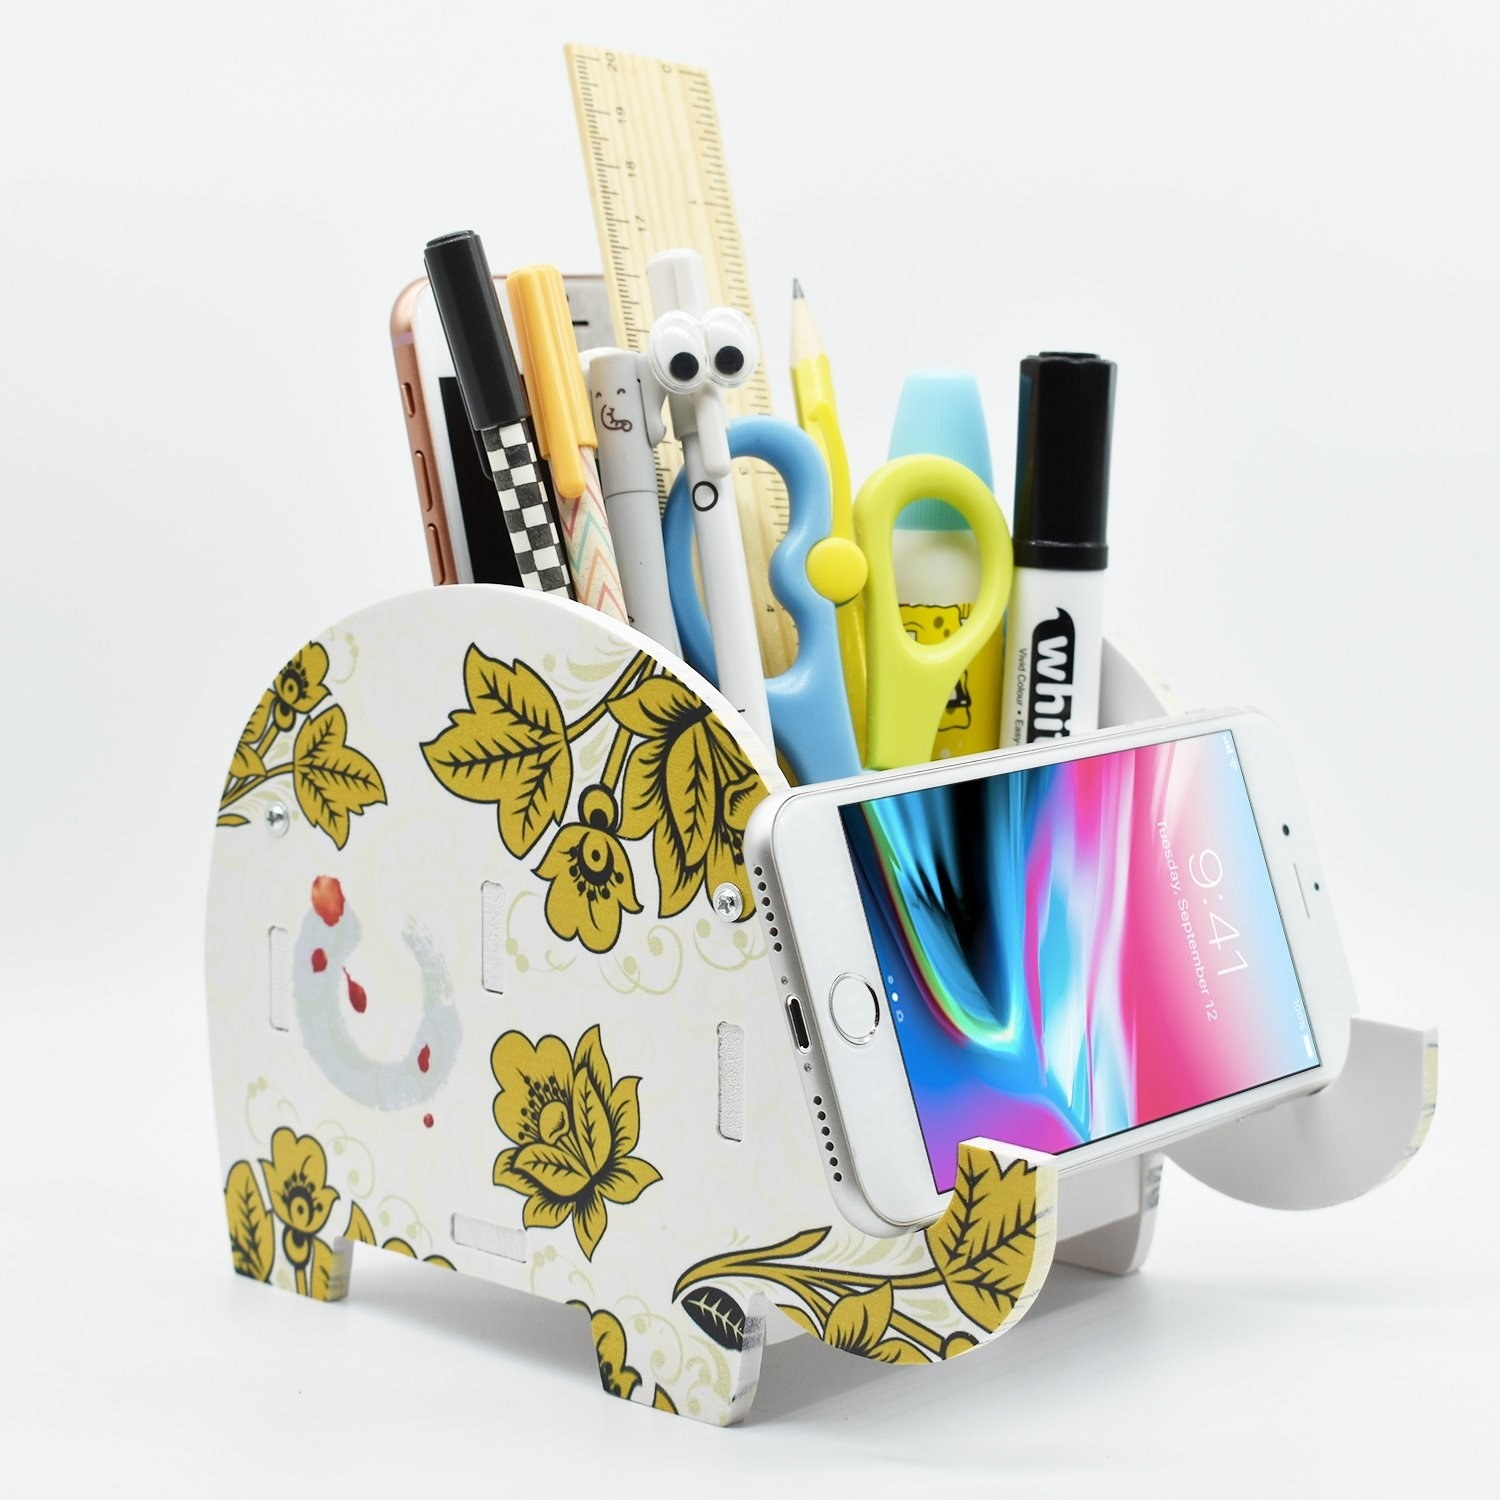 The organizer holding a phone, pens, pencils, markers, scissors, a ruler, and more